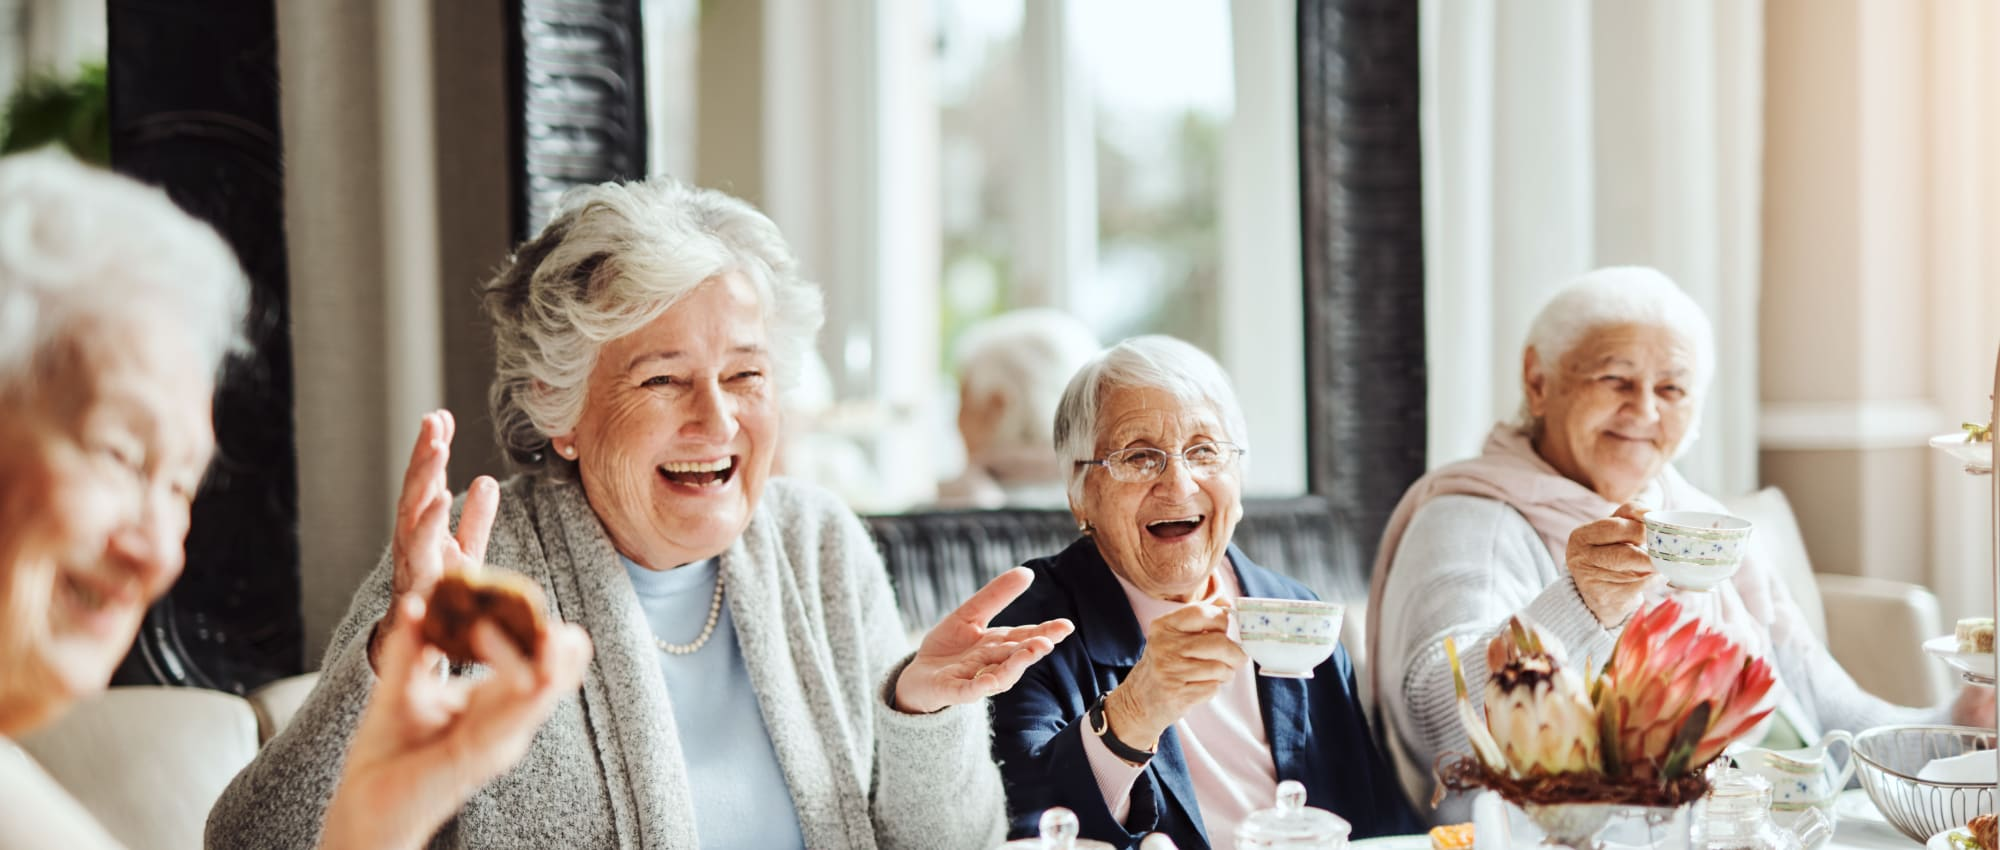 Services and amenities at Milestone Senior Living in Cross Plains, Wisconsin.